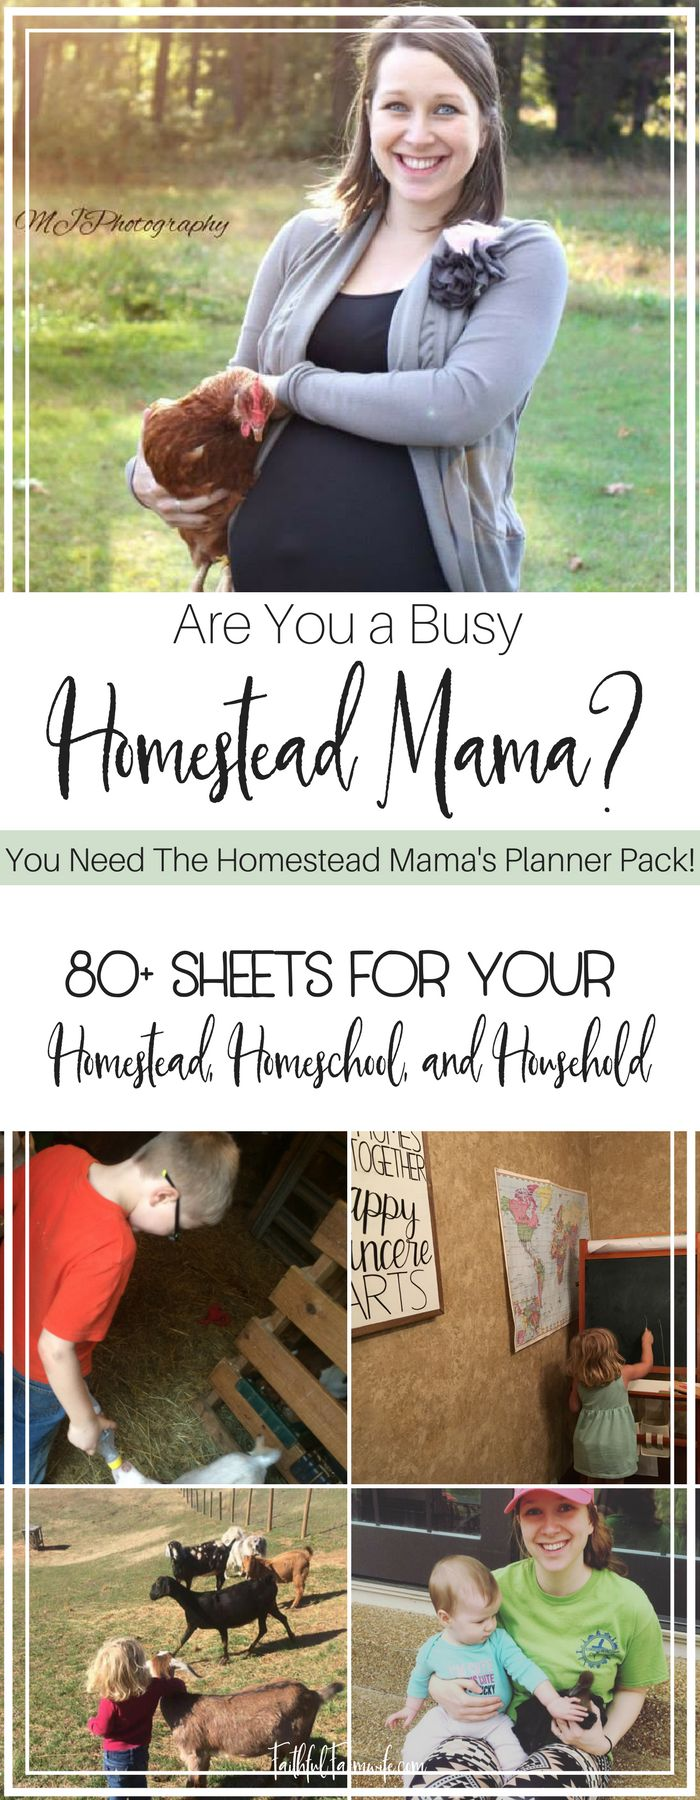 Homestead Mama's Planning Pack